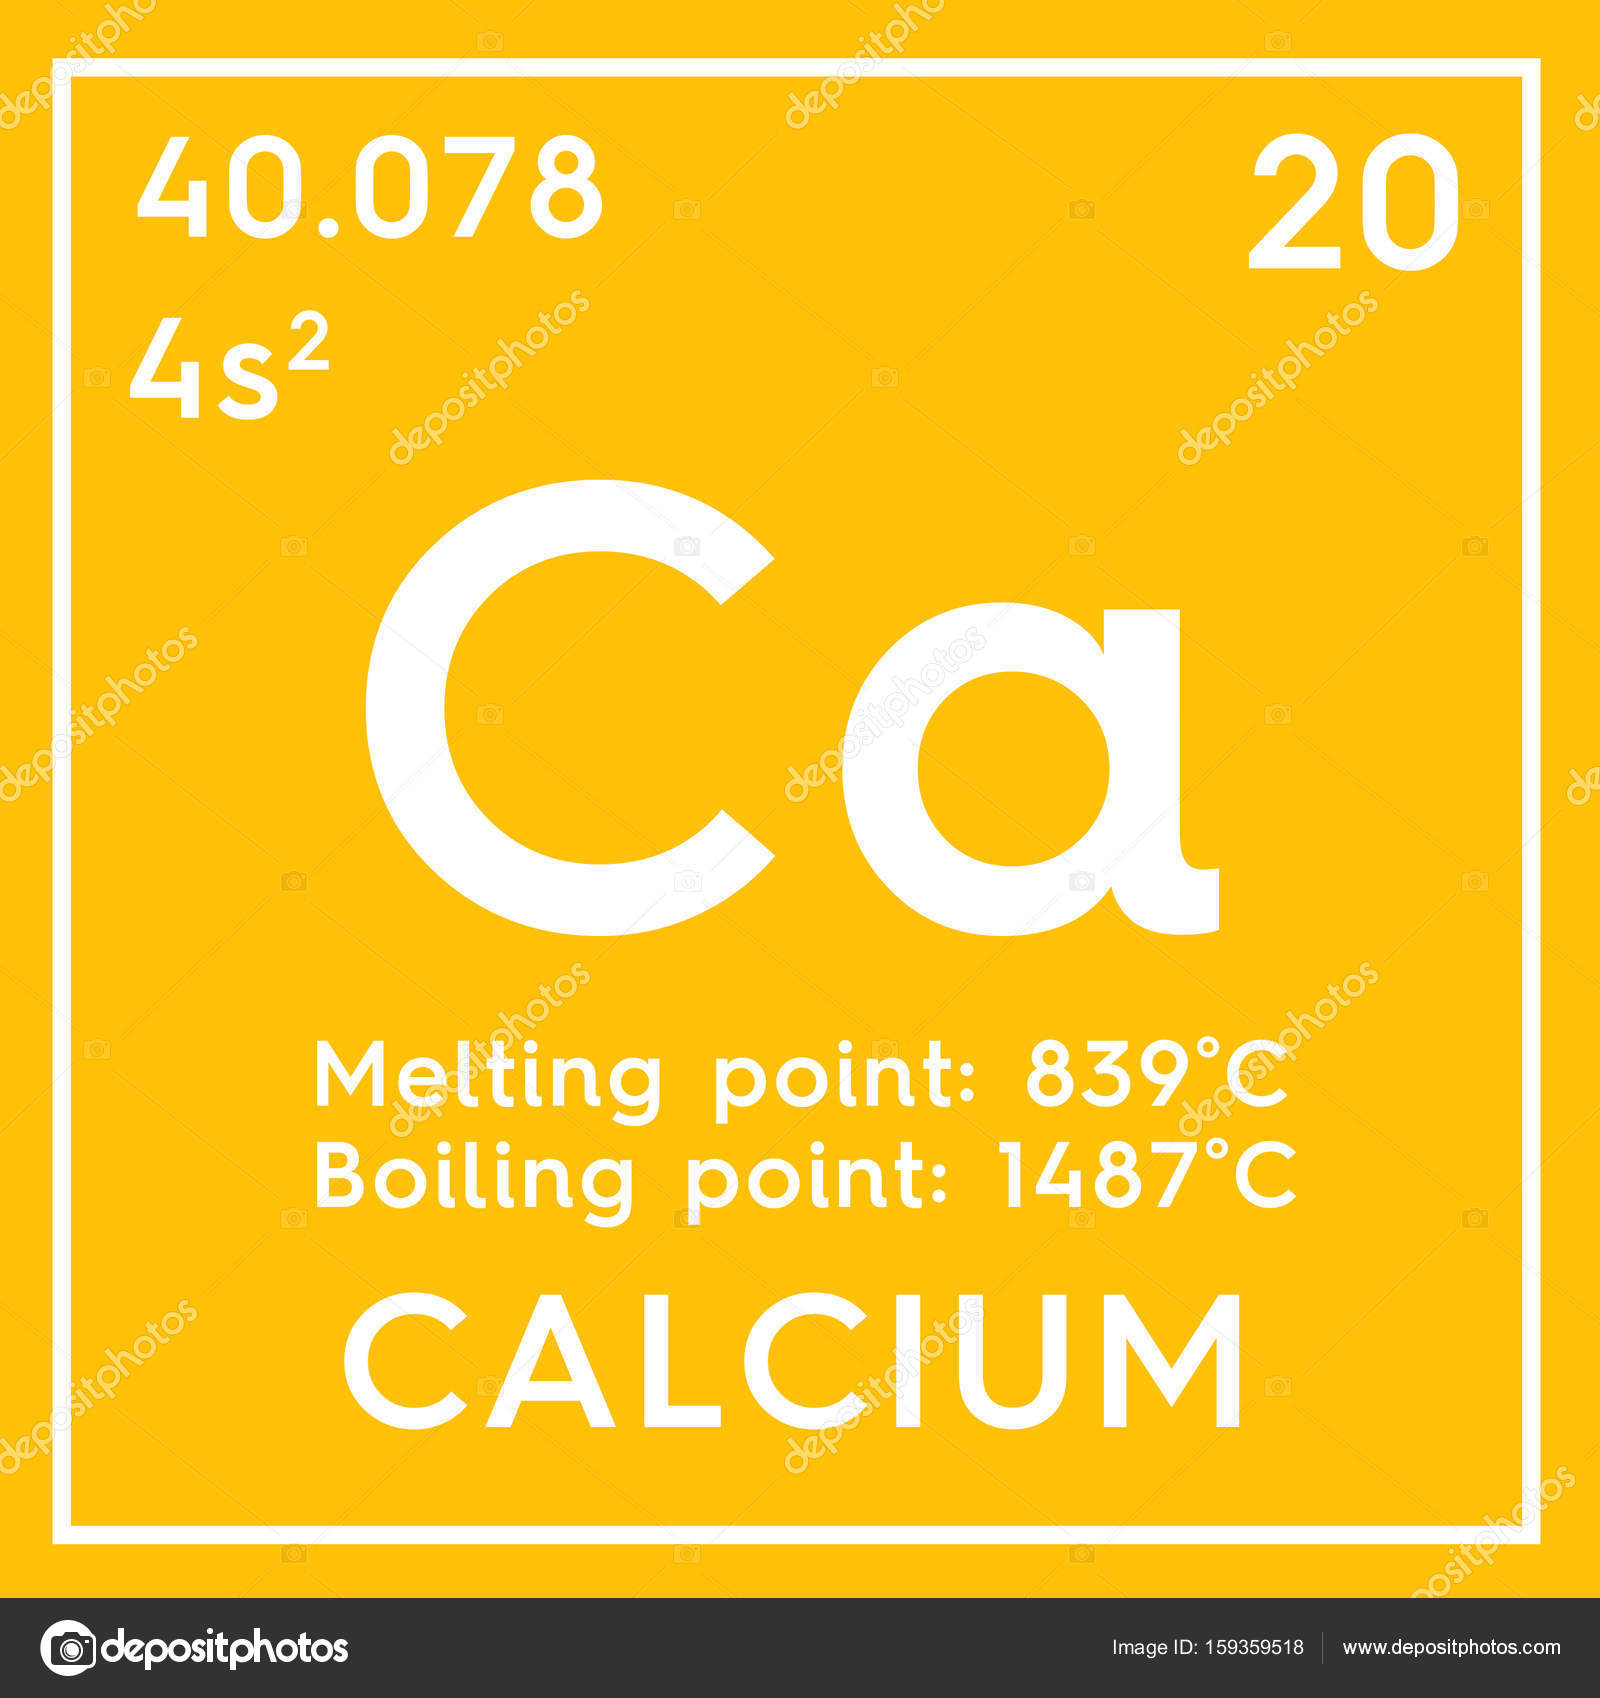 alkaline earth metals chemical element of mendeleevs periodic table calcium in square cube creative concept photo by sanches812